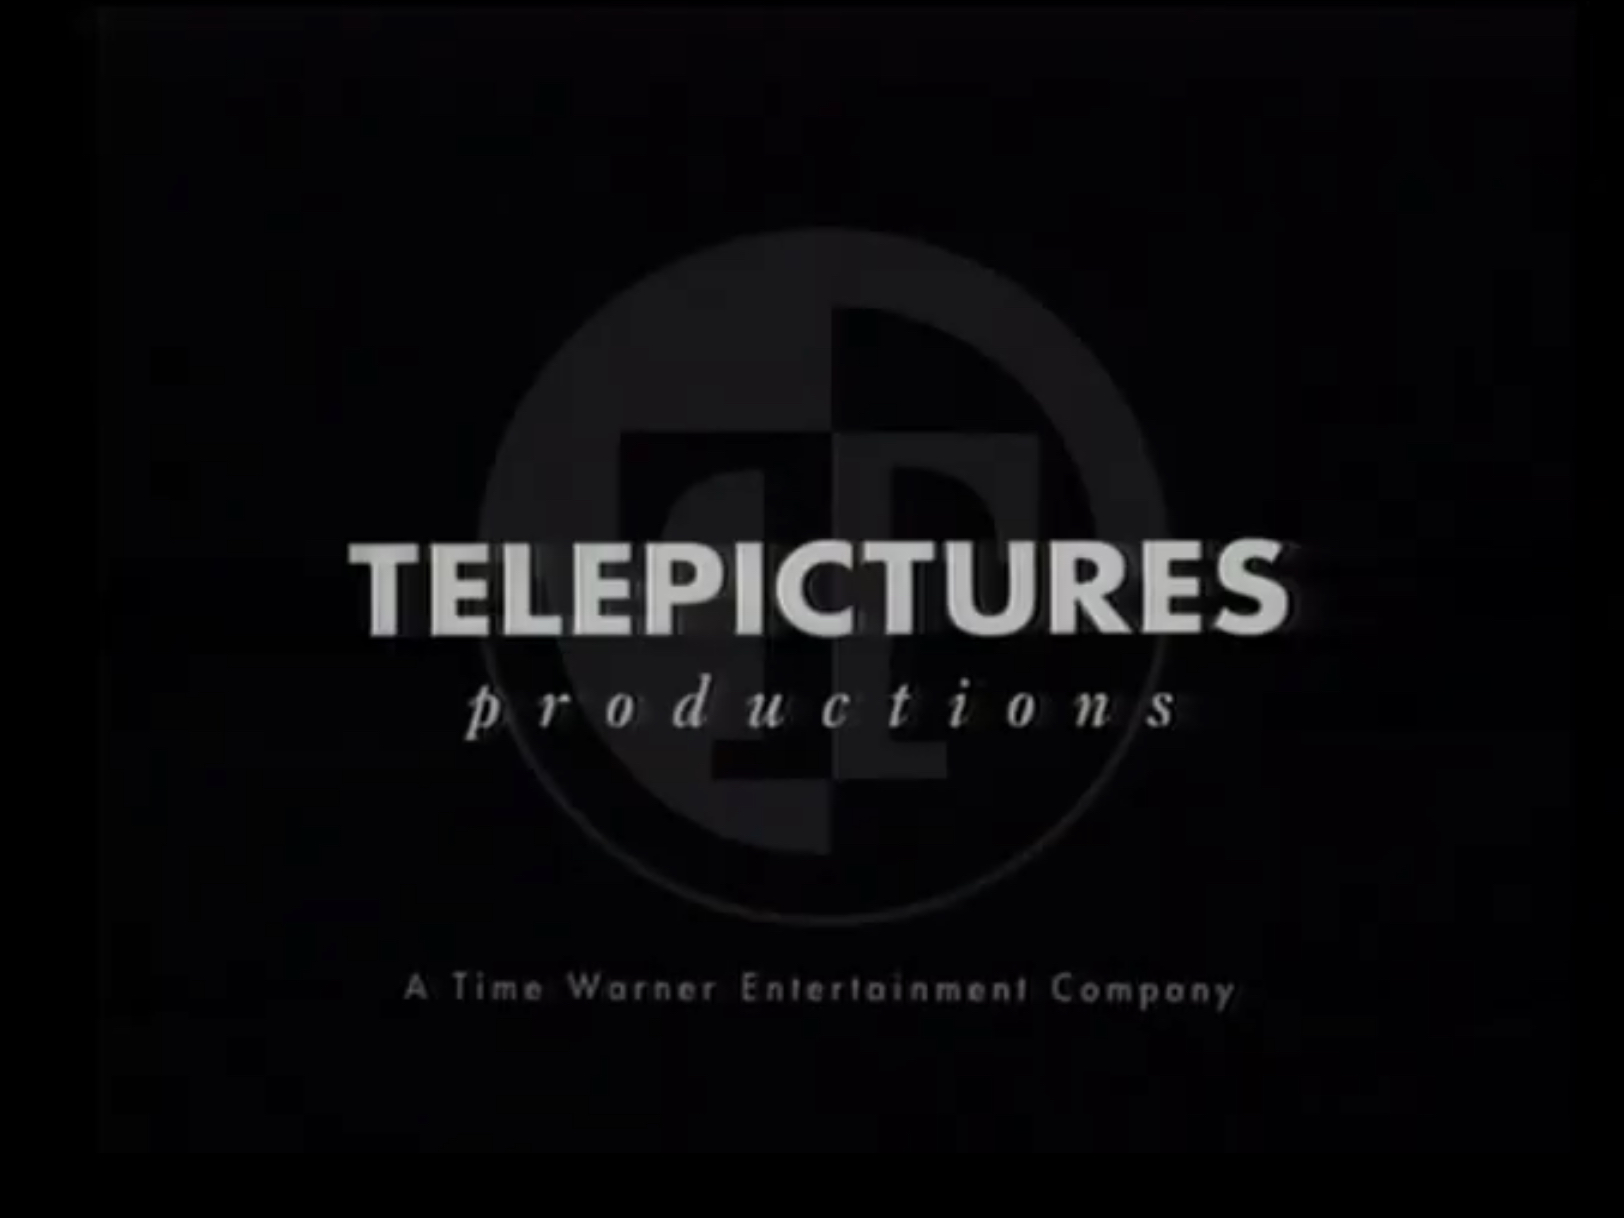 File:Telepictures-Productions.jpg